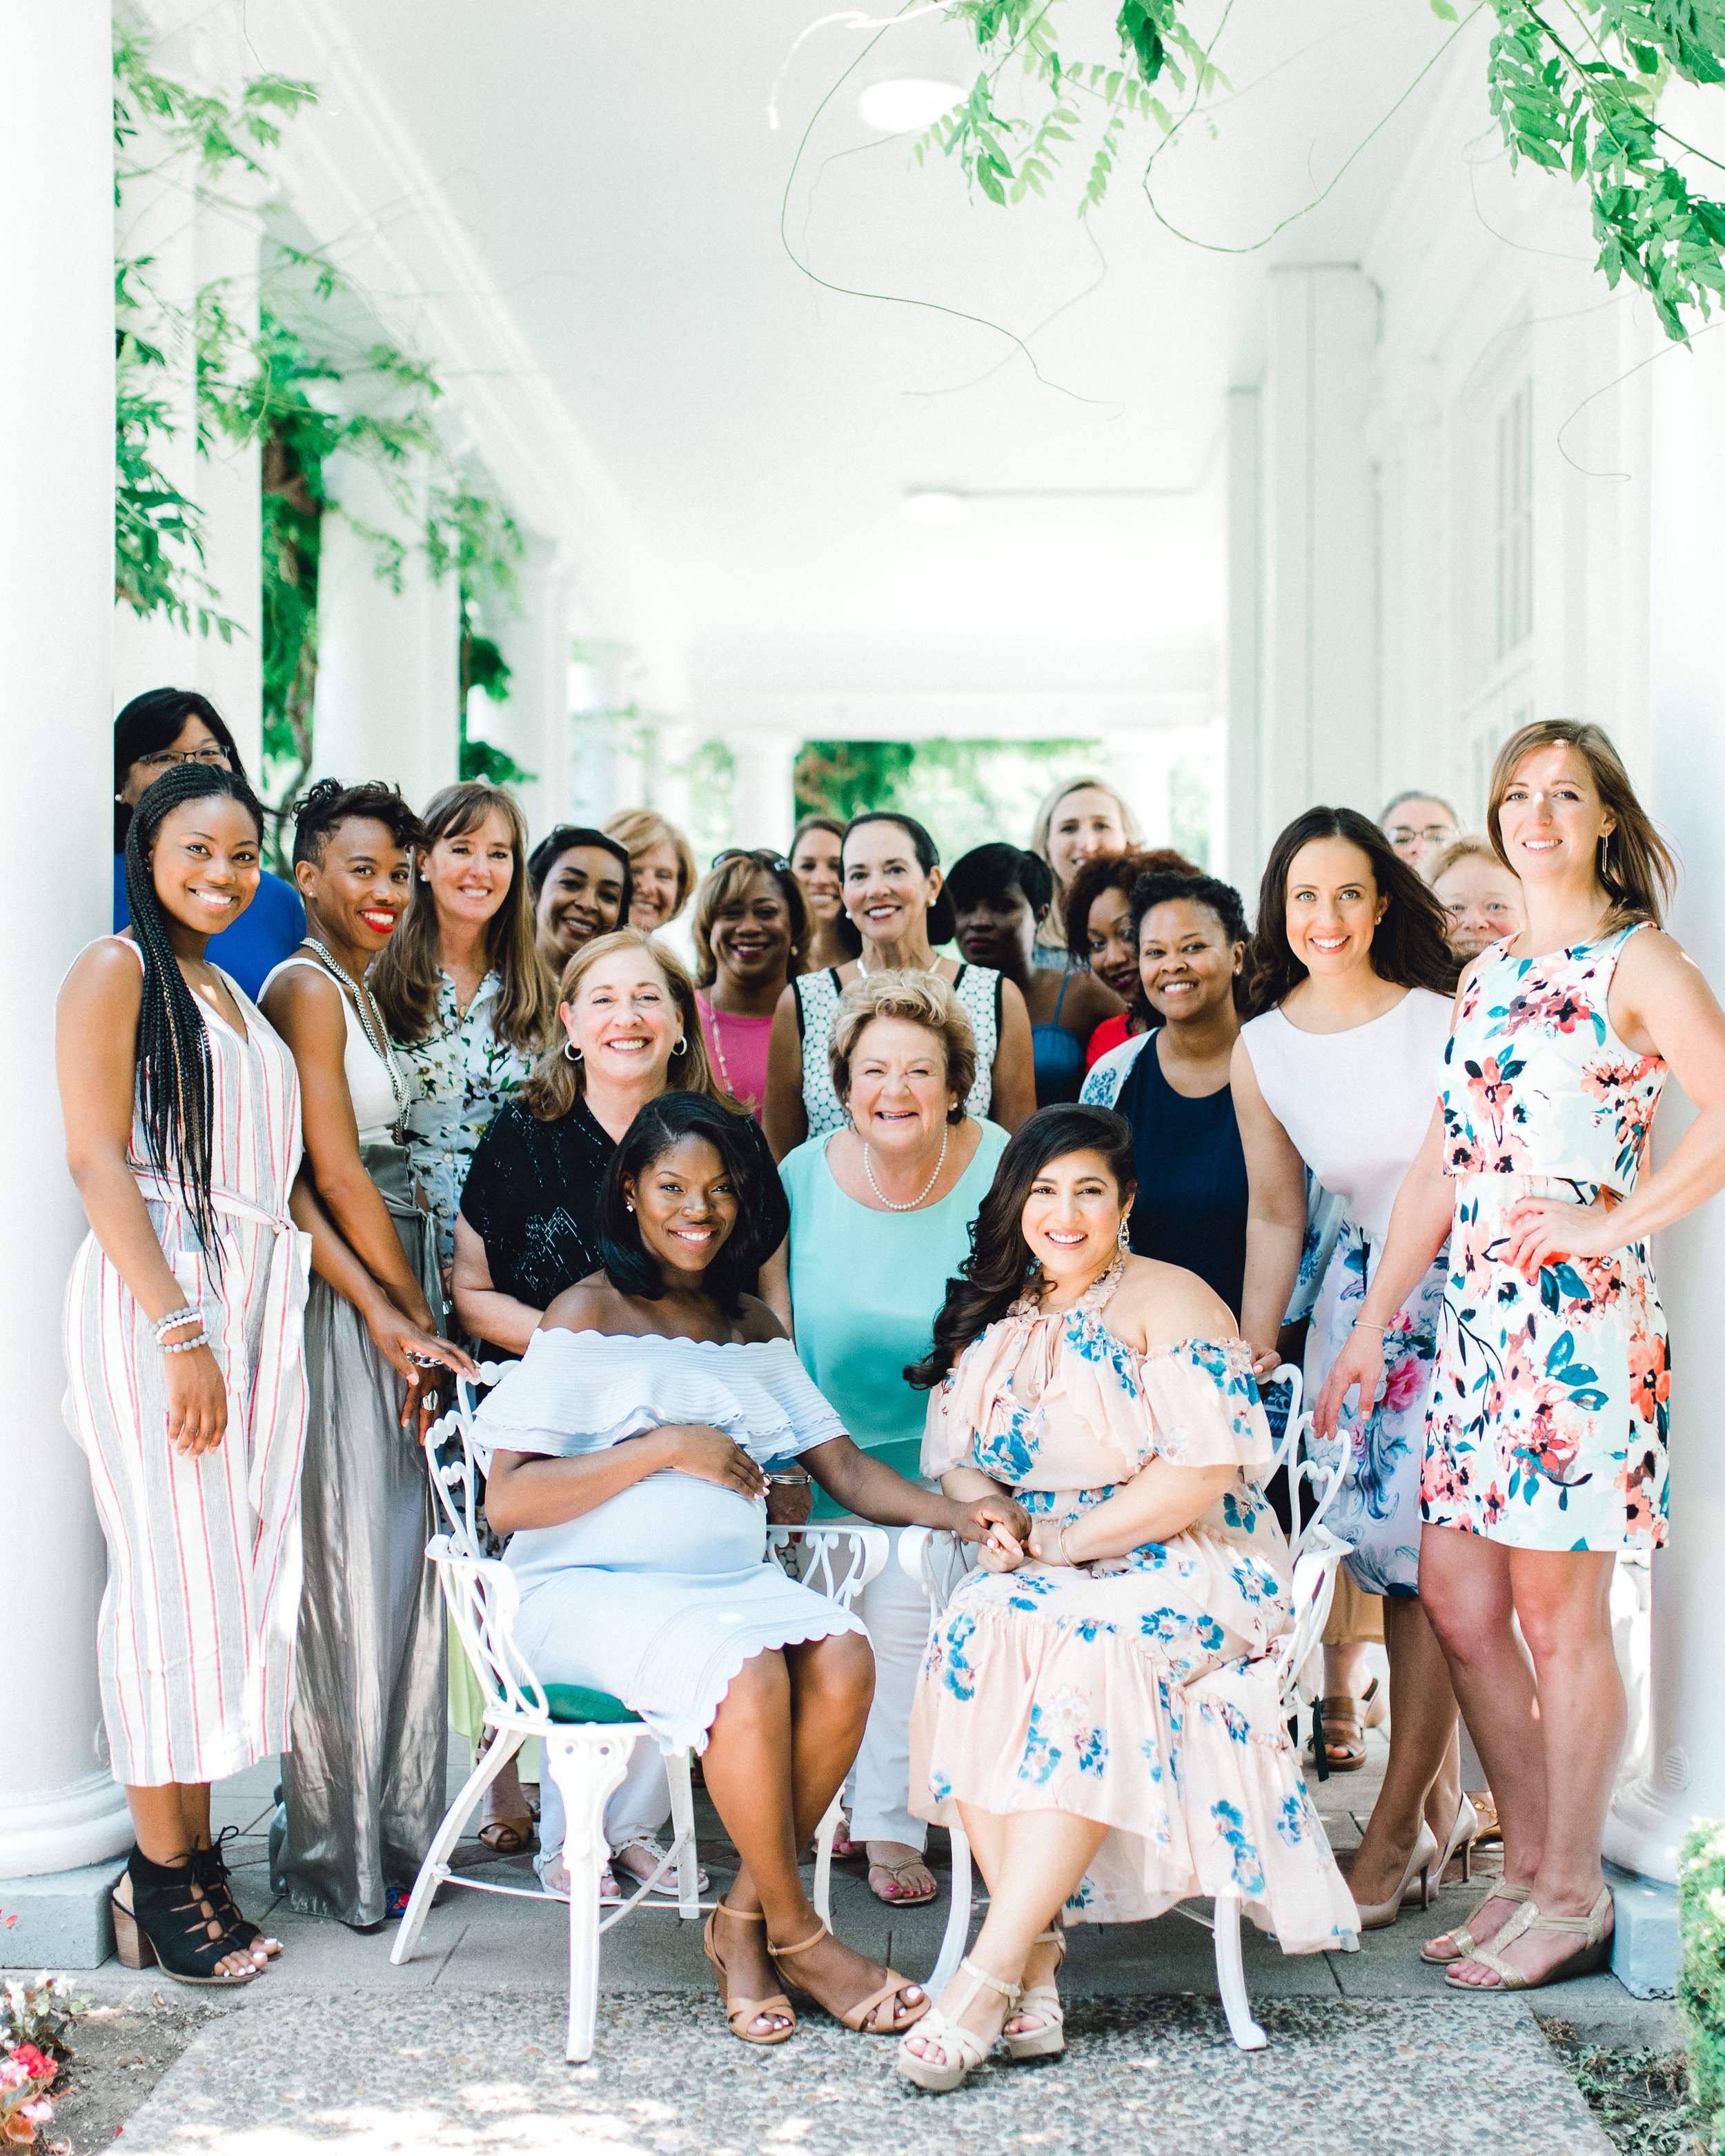 Lauryn_Kay_Photography_Portland_Waverley_Baby_Shower(151of166).jpg